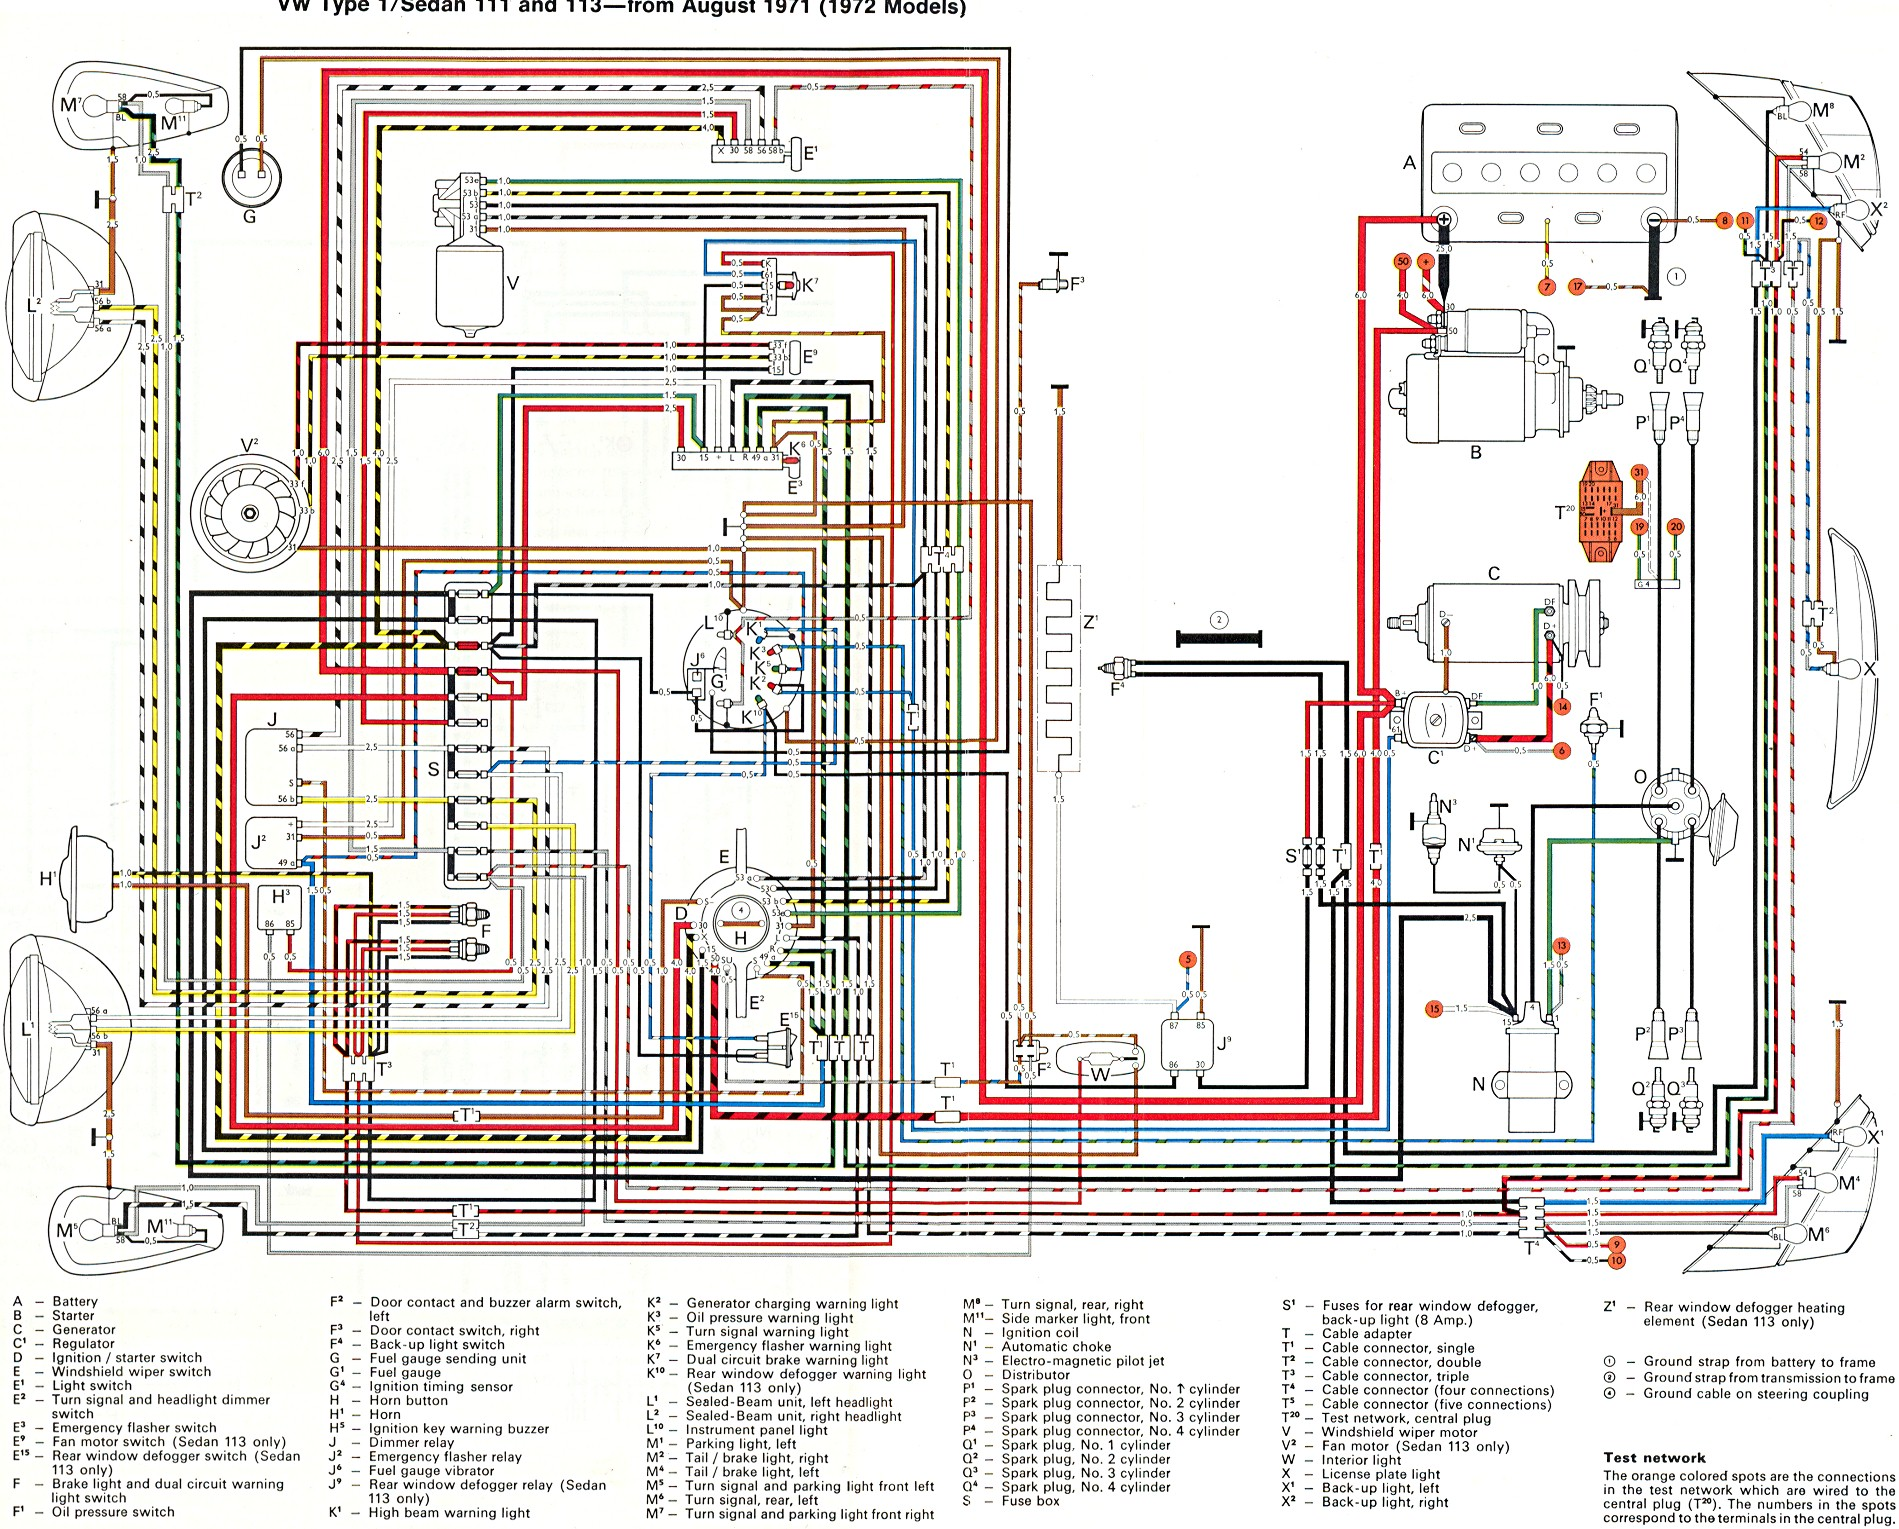 1977 ct70 wiring diagram thesamba.com :: beetle - late model/super - 1968-up - view ... 1977 vw wiring diagram #5